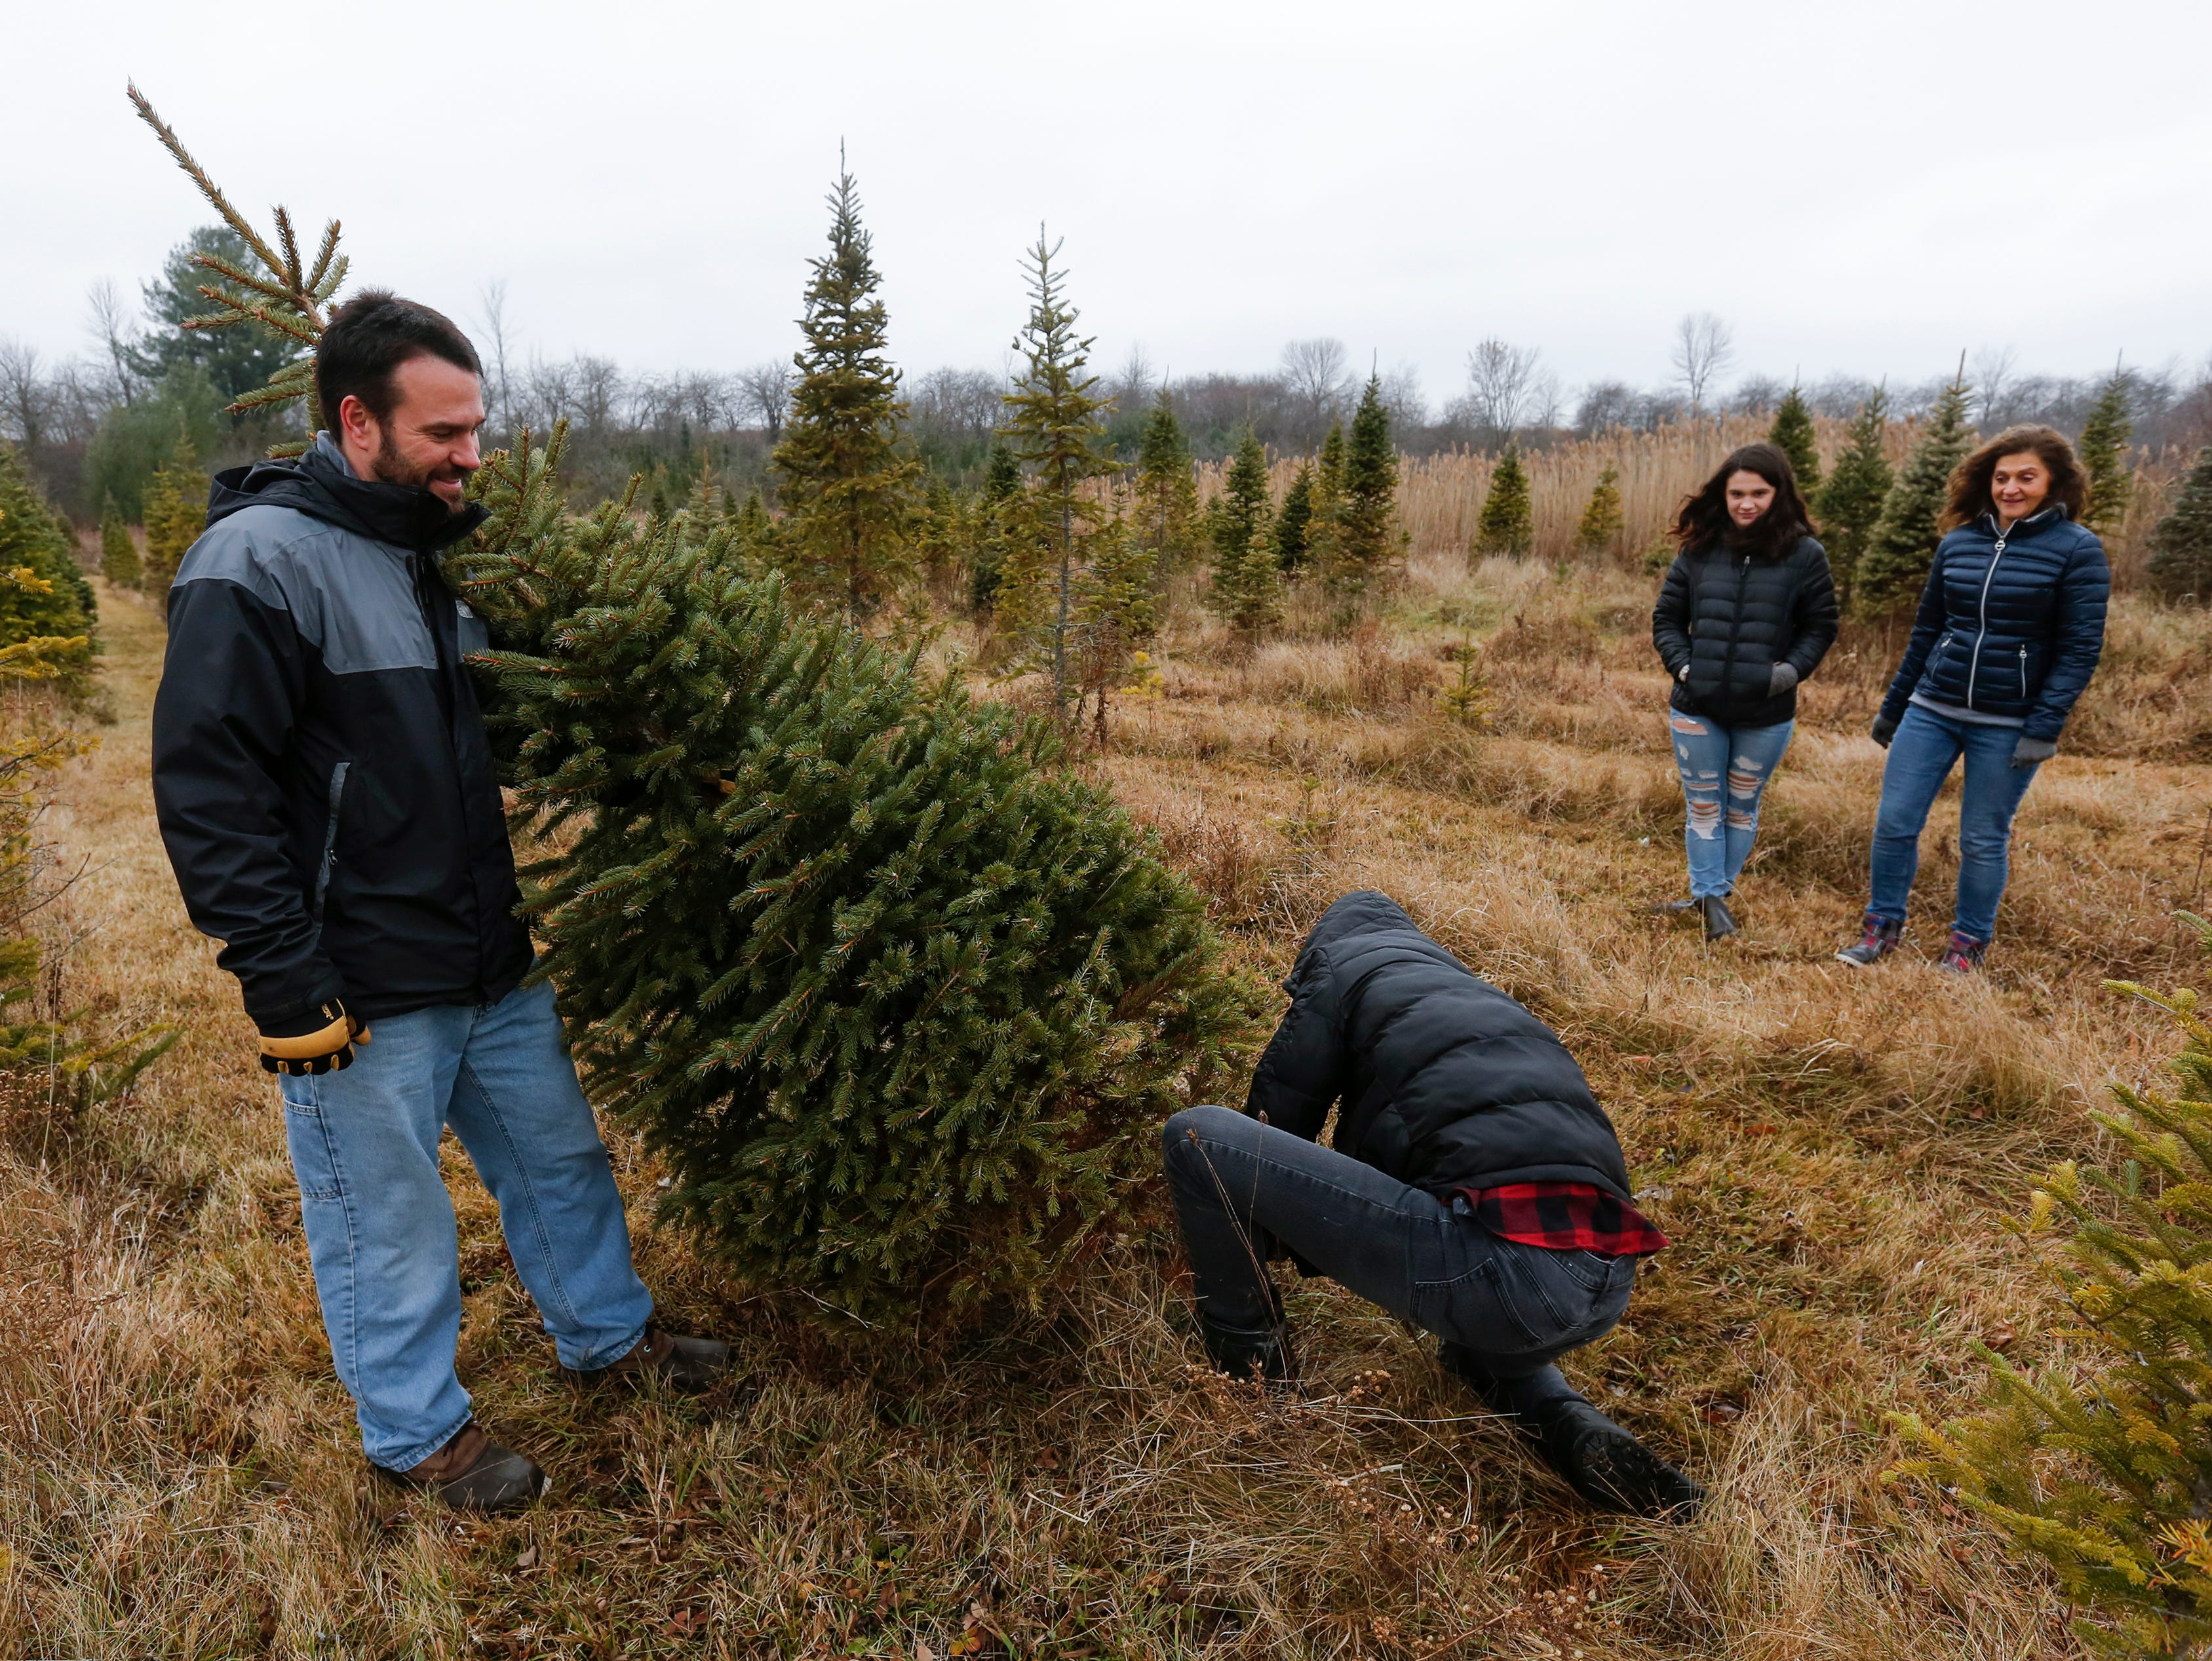 Adam Klarkowski, of Manitowoc, holds the tree as his son Brady, 15, saws away while mom Amy and sister Ava, 14, watch with excitement at Taylor Trees Saturday, December 1, 2018, in Mishicot, Wis. Joshua Clark/USA TODAY NETWORK-Wisconsin